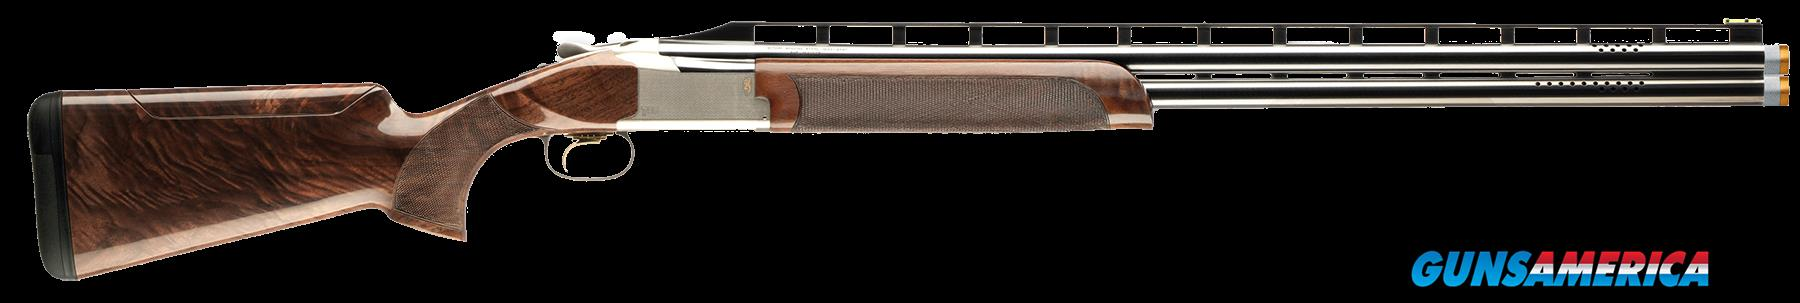 "Browning 0136243009 725 Citori High Rib Sporting O/U 12 Gauge 32"" 3"" Blk Walnut Stk  Guns > Shotguns > B Misc Shotguns"